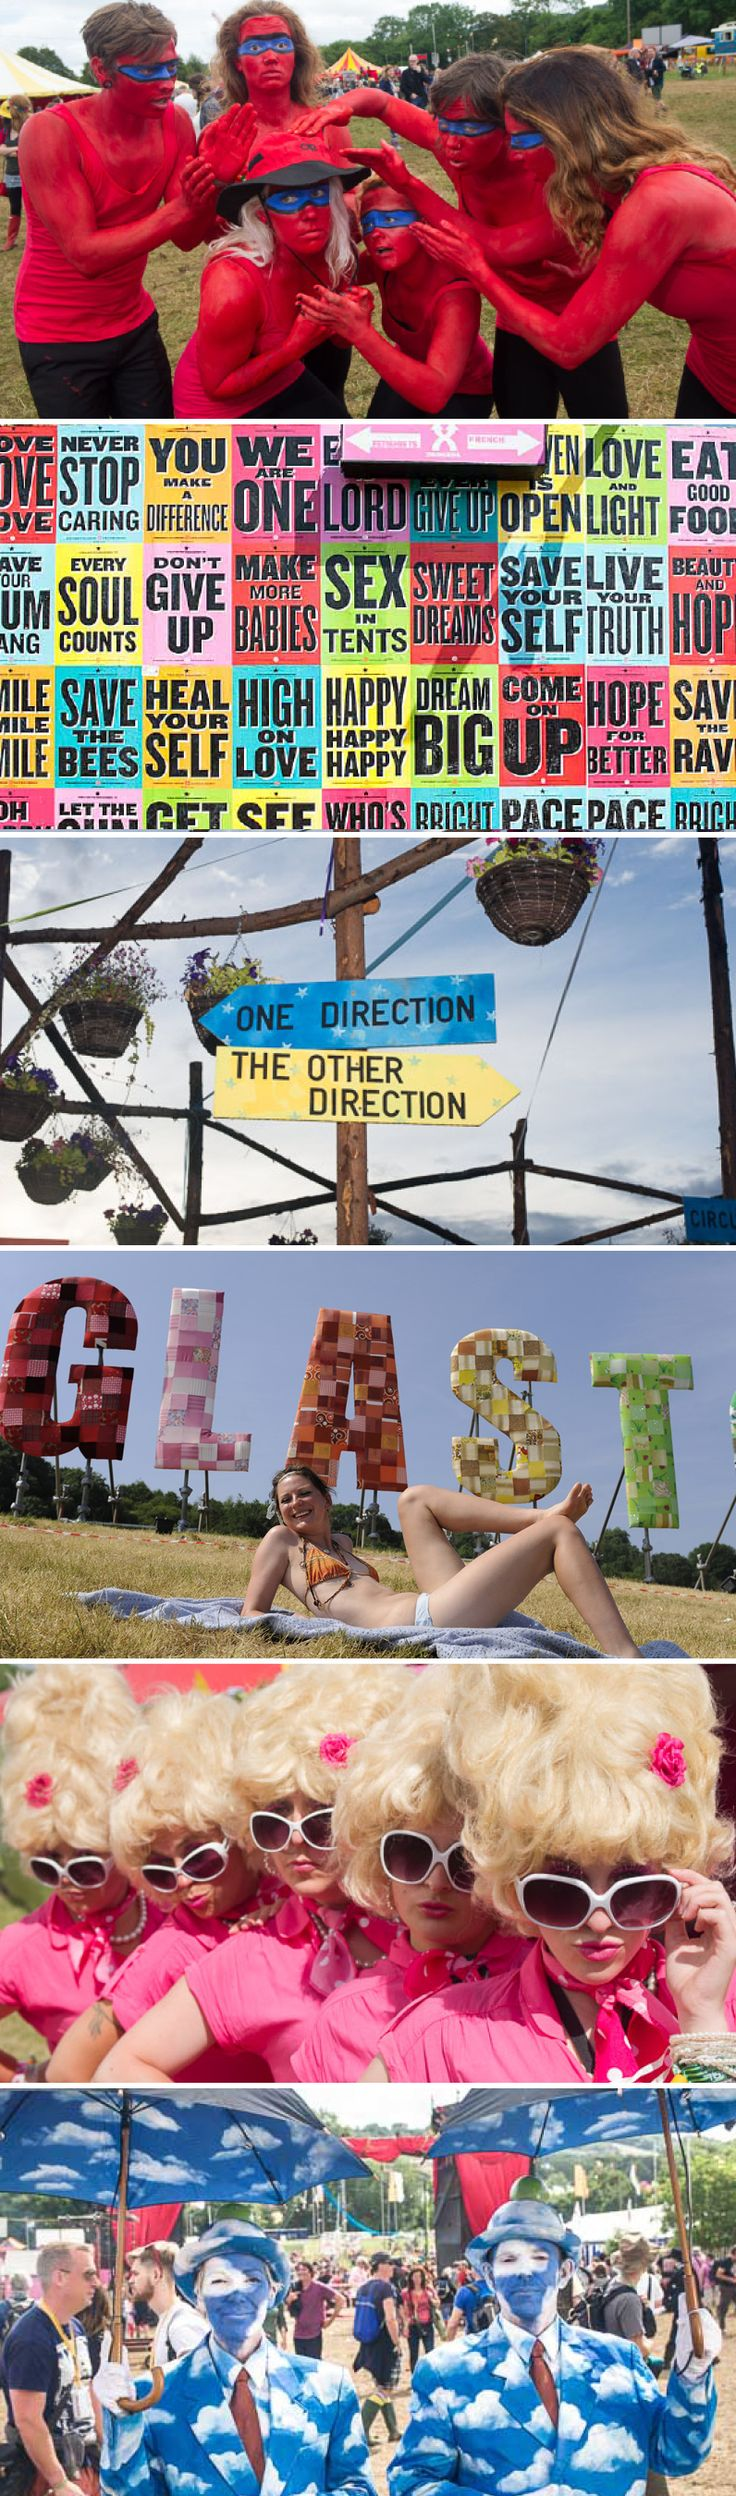 """Read our blog """"The Best of #Glastonbury2014 : Top 10 Acts and Some Dirty Muddy Highlights"""" at http://www.creation.com.es/creation5app/en/the-best-of-glastonbury/"""